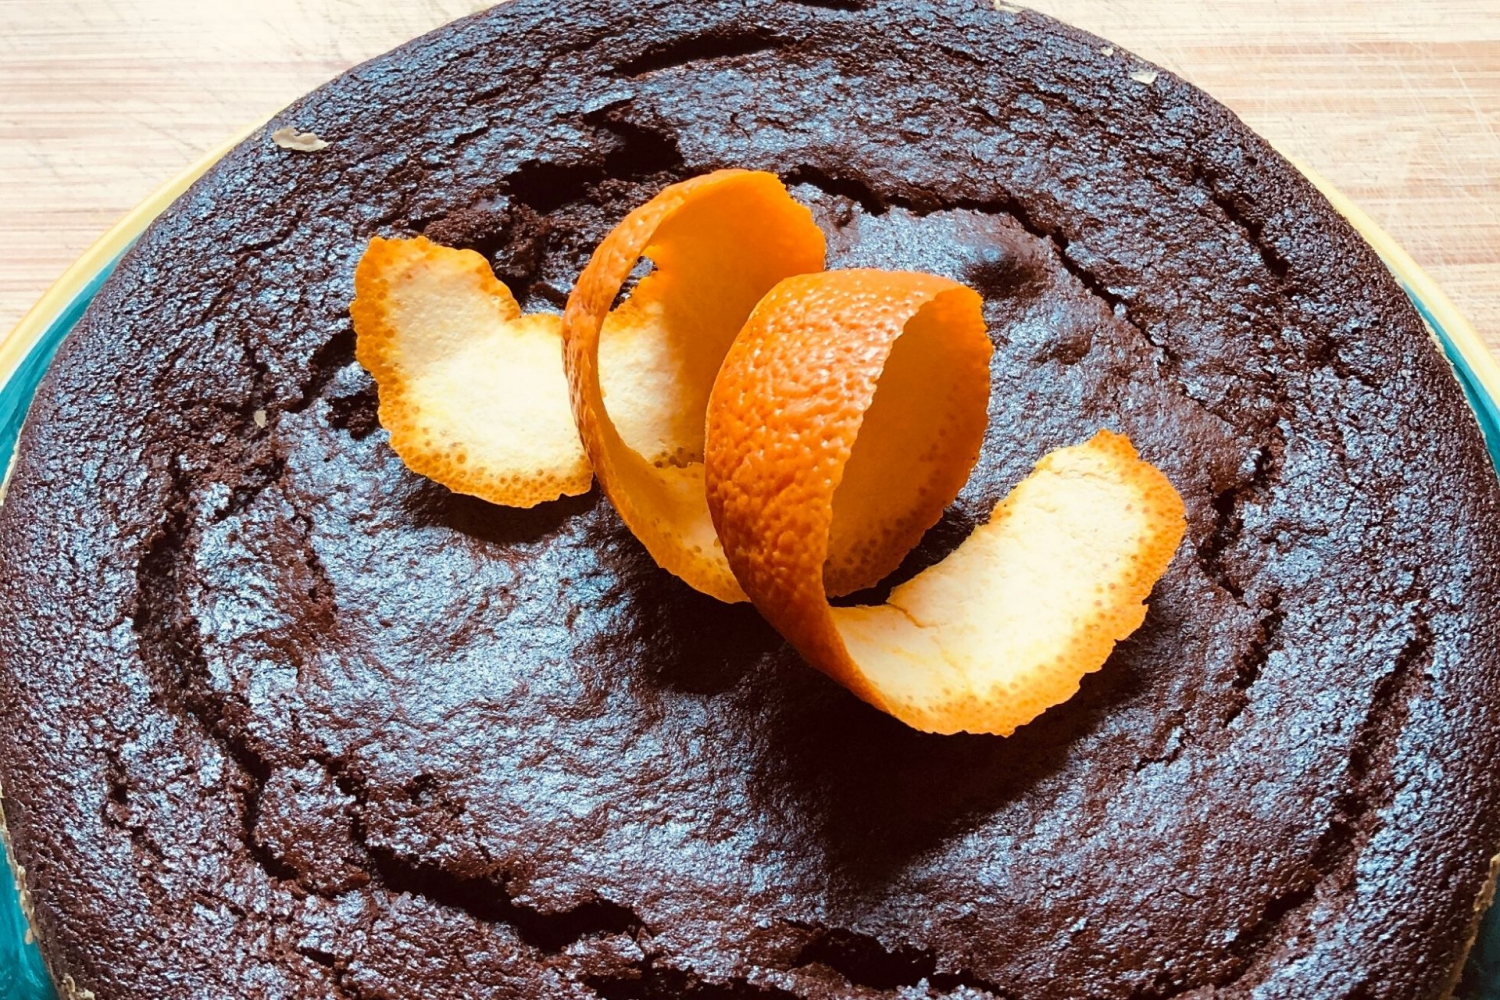 Recipe: Orange and Carob Cake